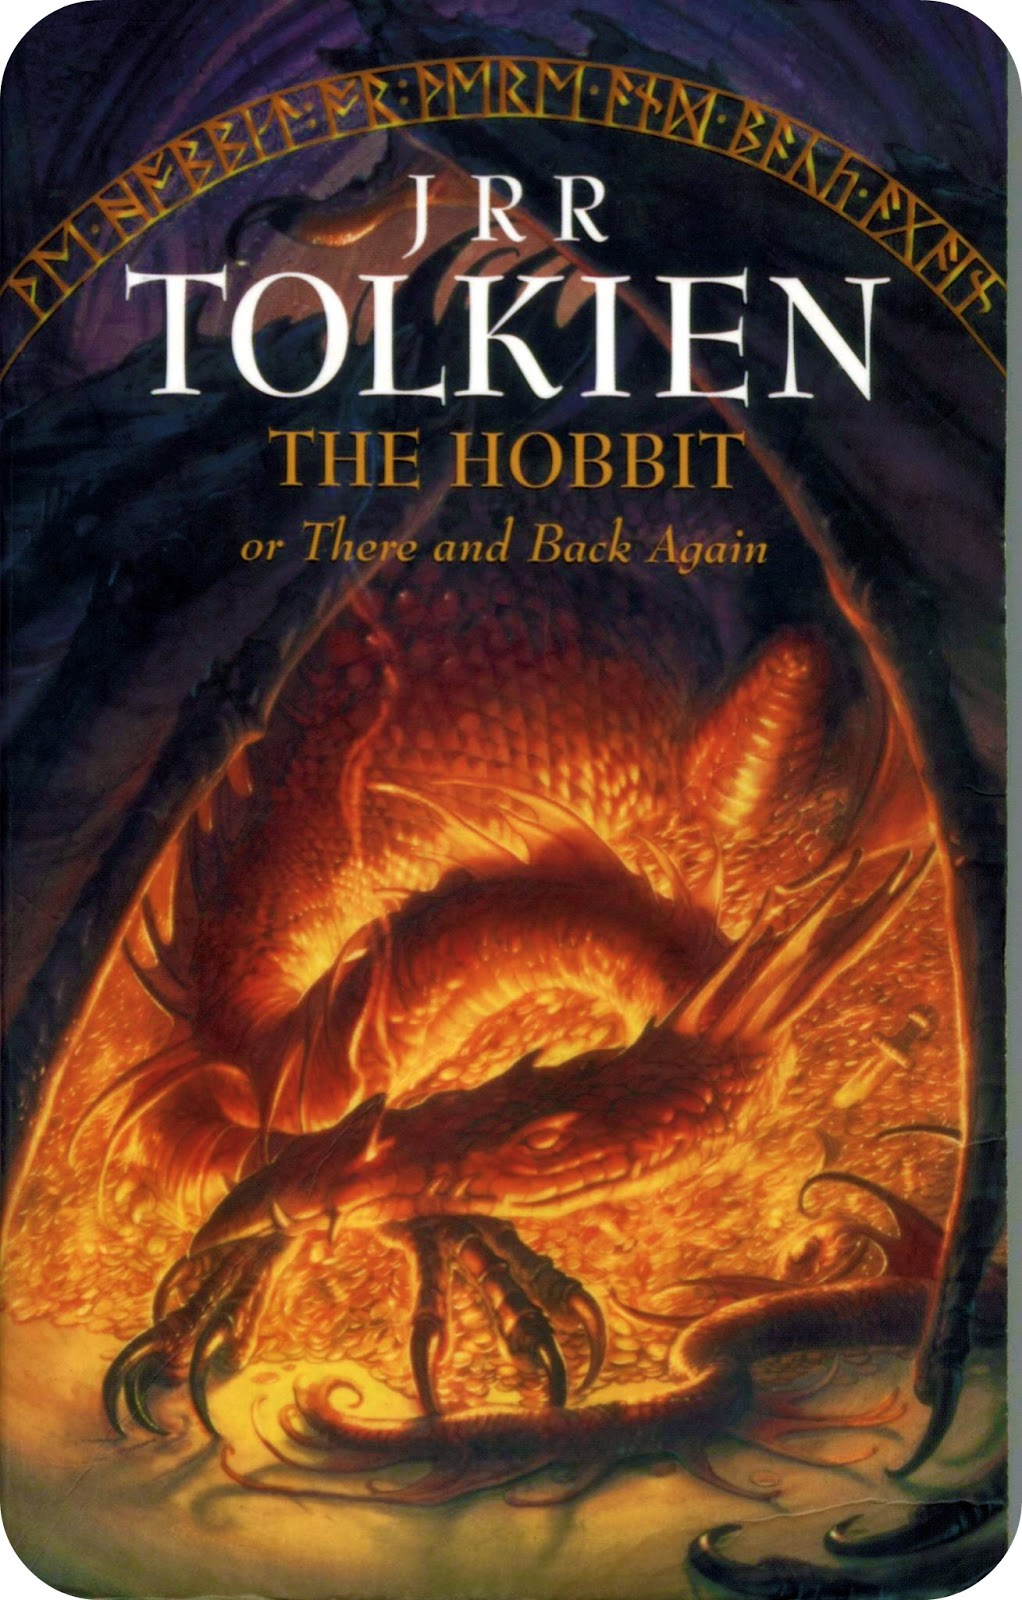 literary criticism literary elements hobbit j r r tolkien I am not about to assert that tolkien was a folk performer and that hobbit and lr are folktale and legend, respectively--although katharyn crabbe 1981 jrr tolkien does analyze them quite profitably as fairy tale and legend (the literary forms of the traditional folktale and legend.